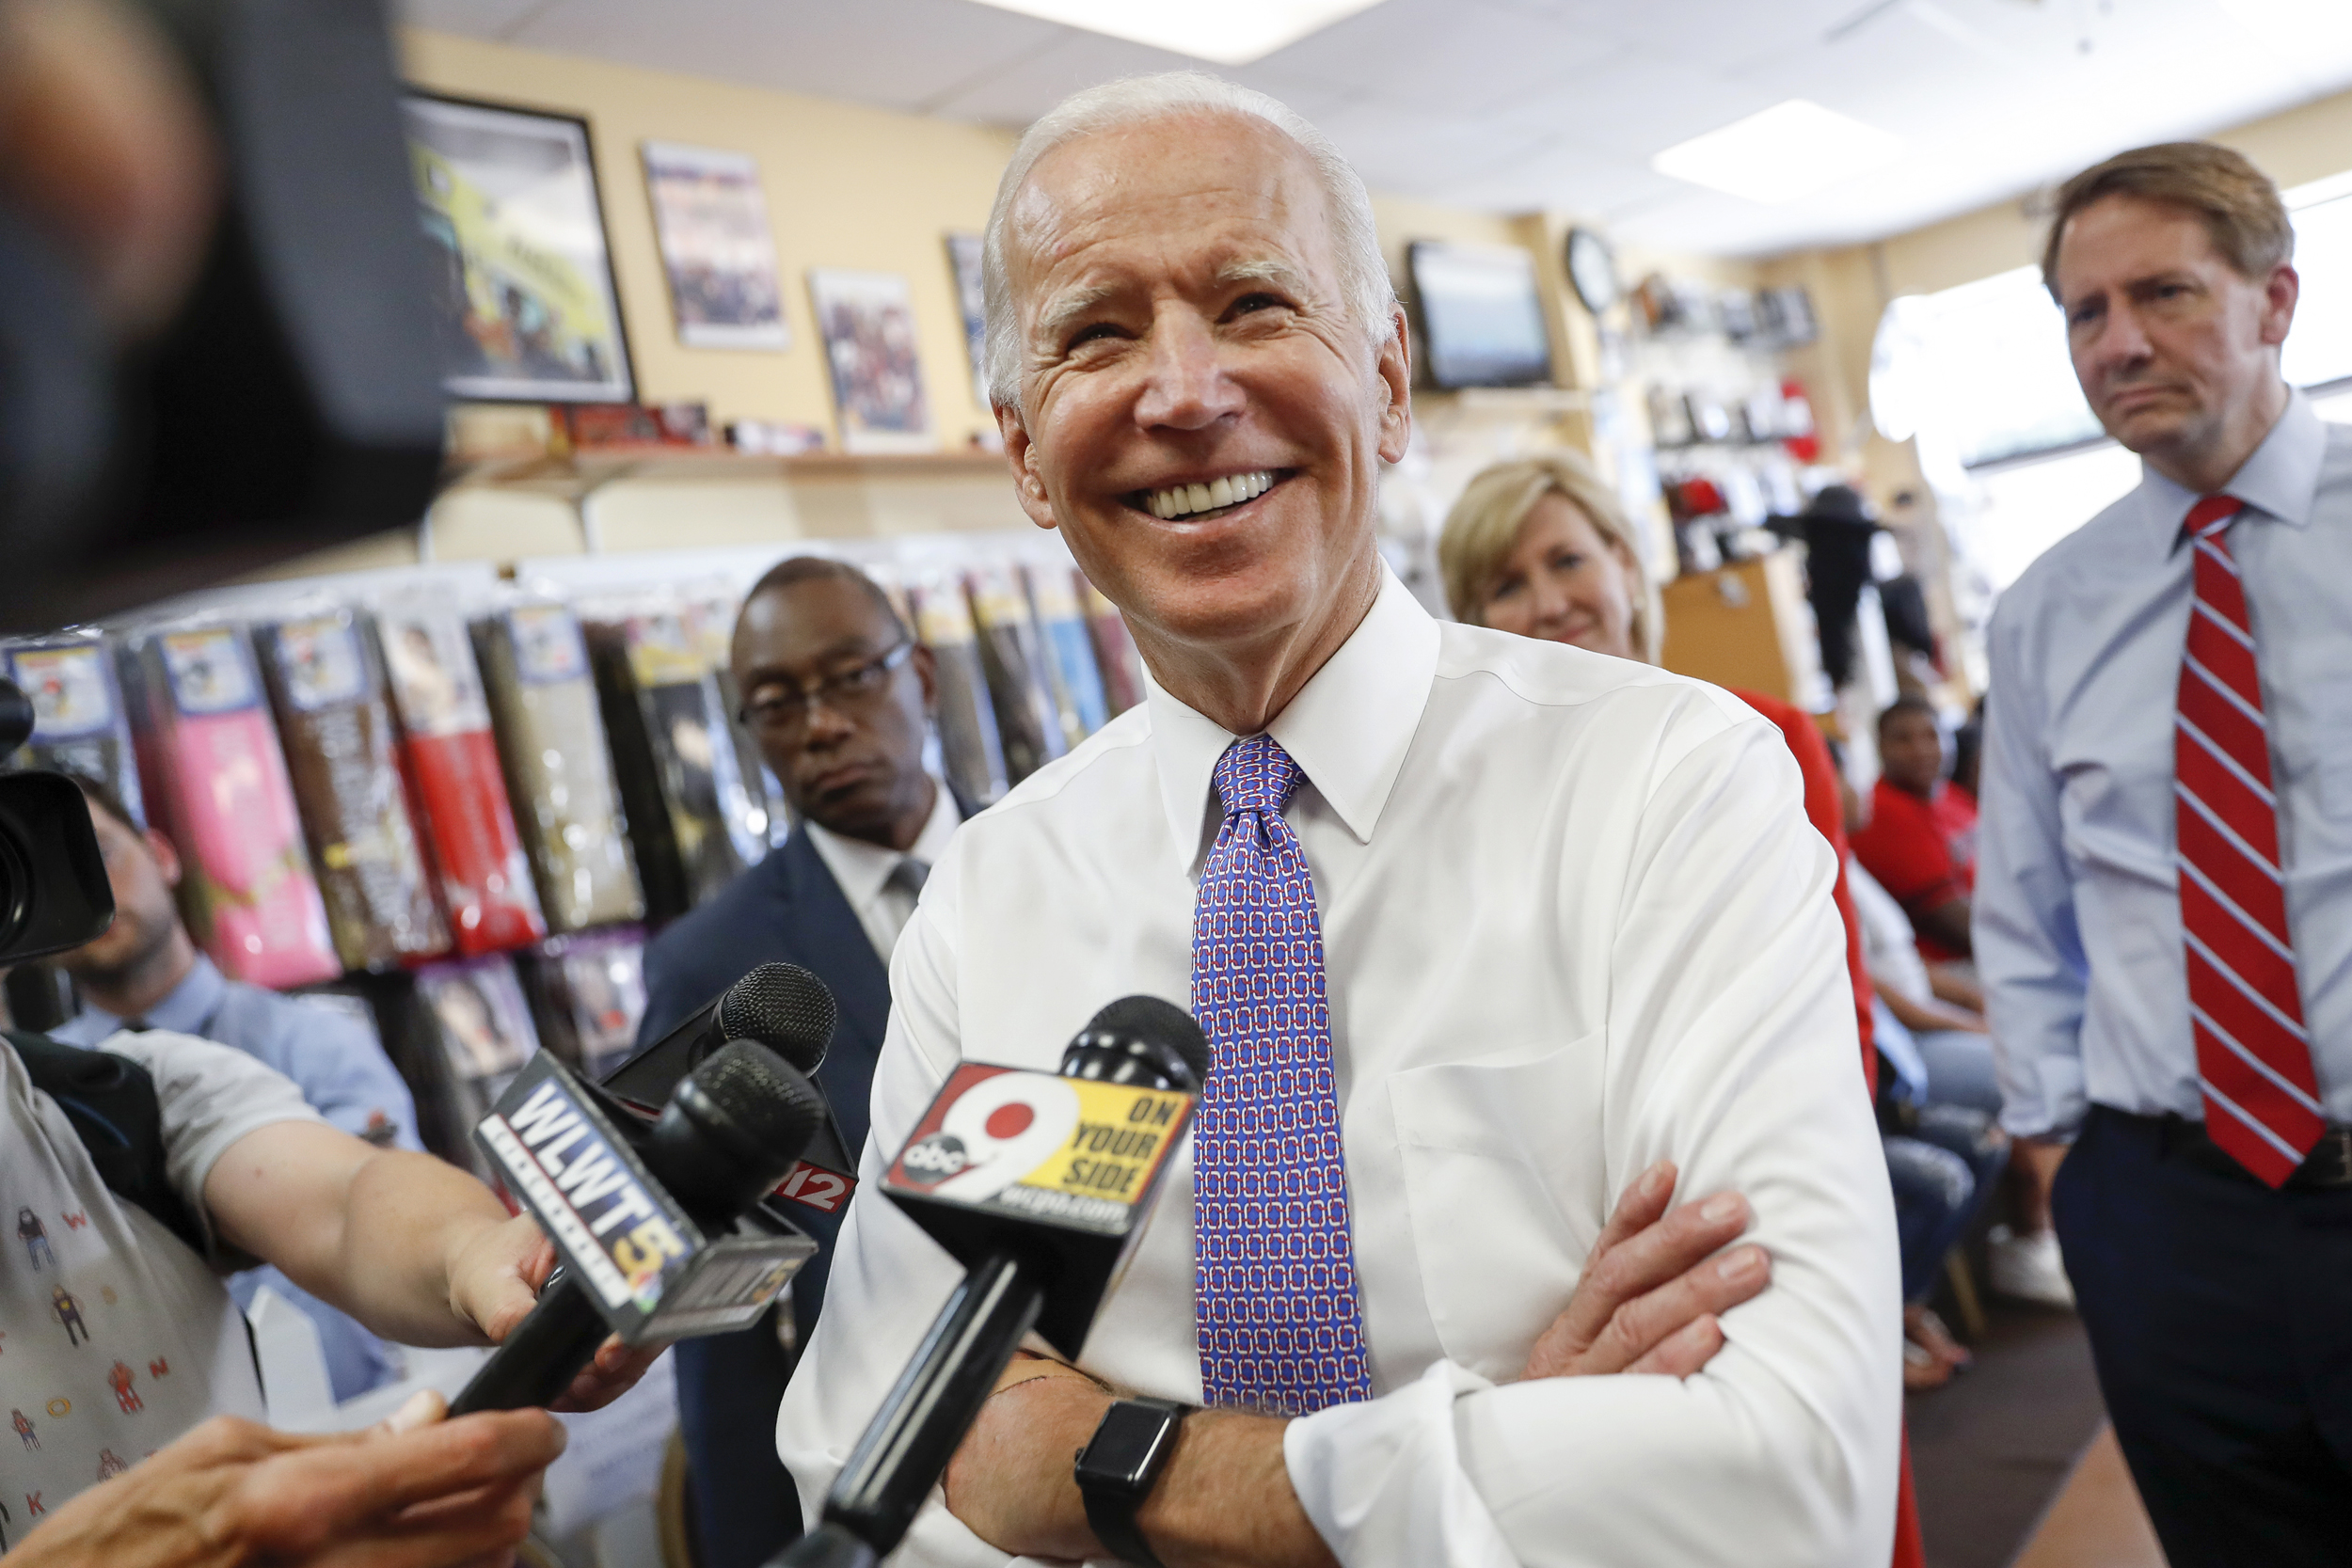 Biden-launches-'As-You-Are,'-an-LGBTQ-family-acceptance-campaign